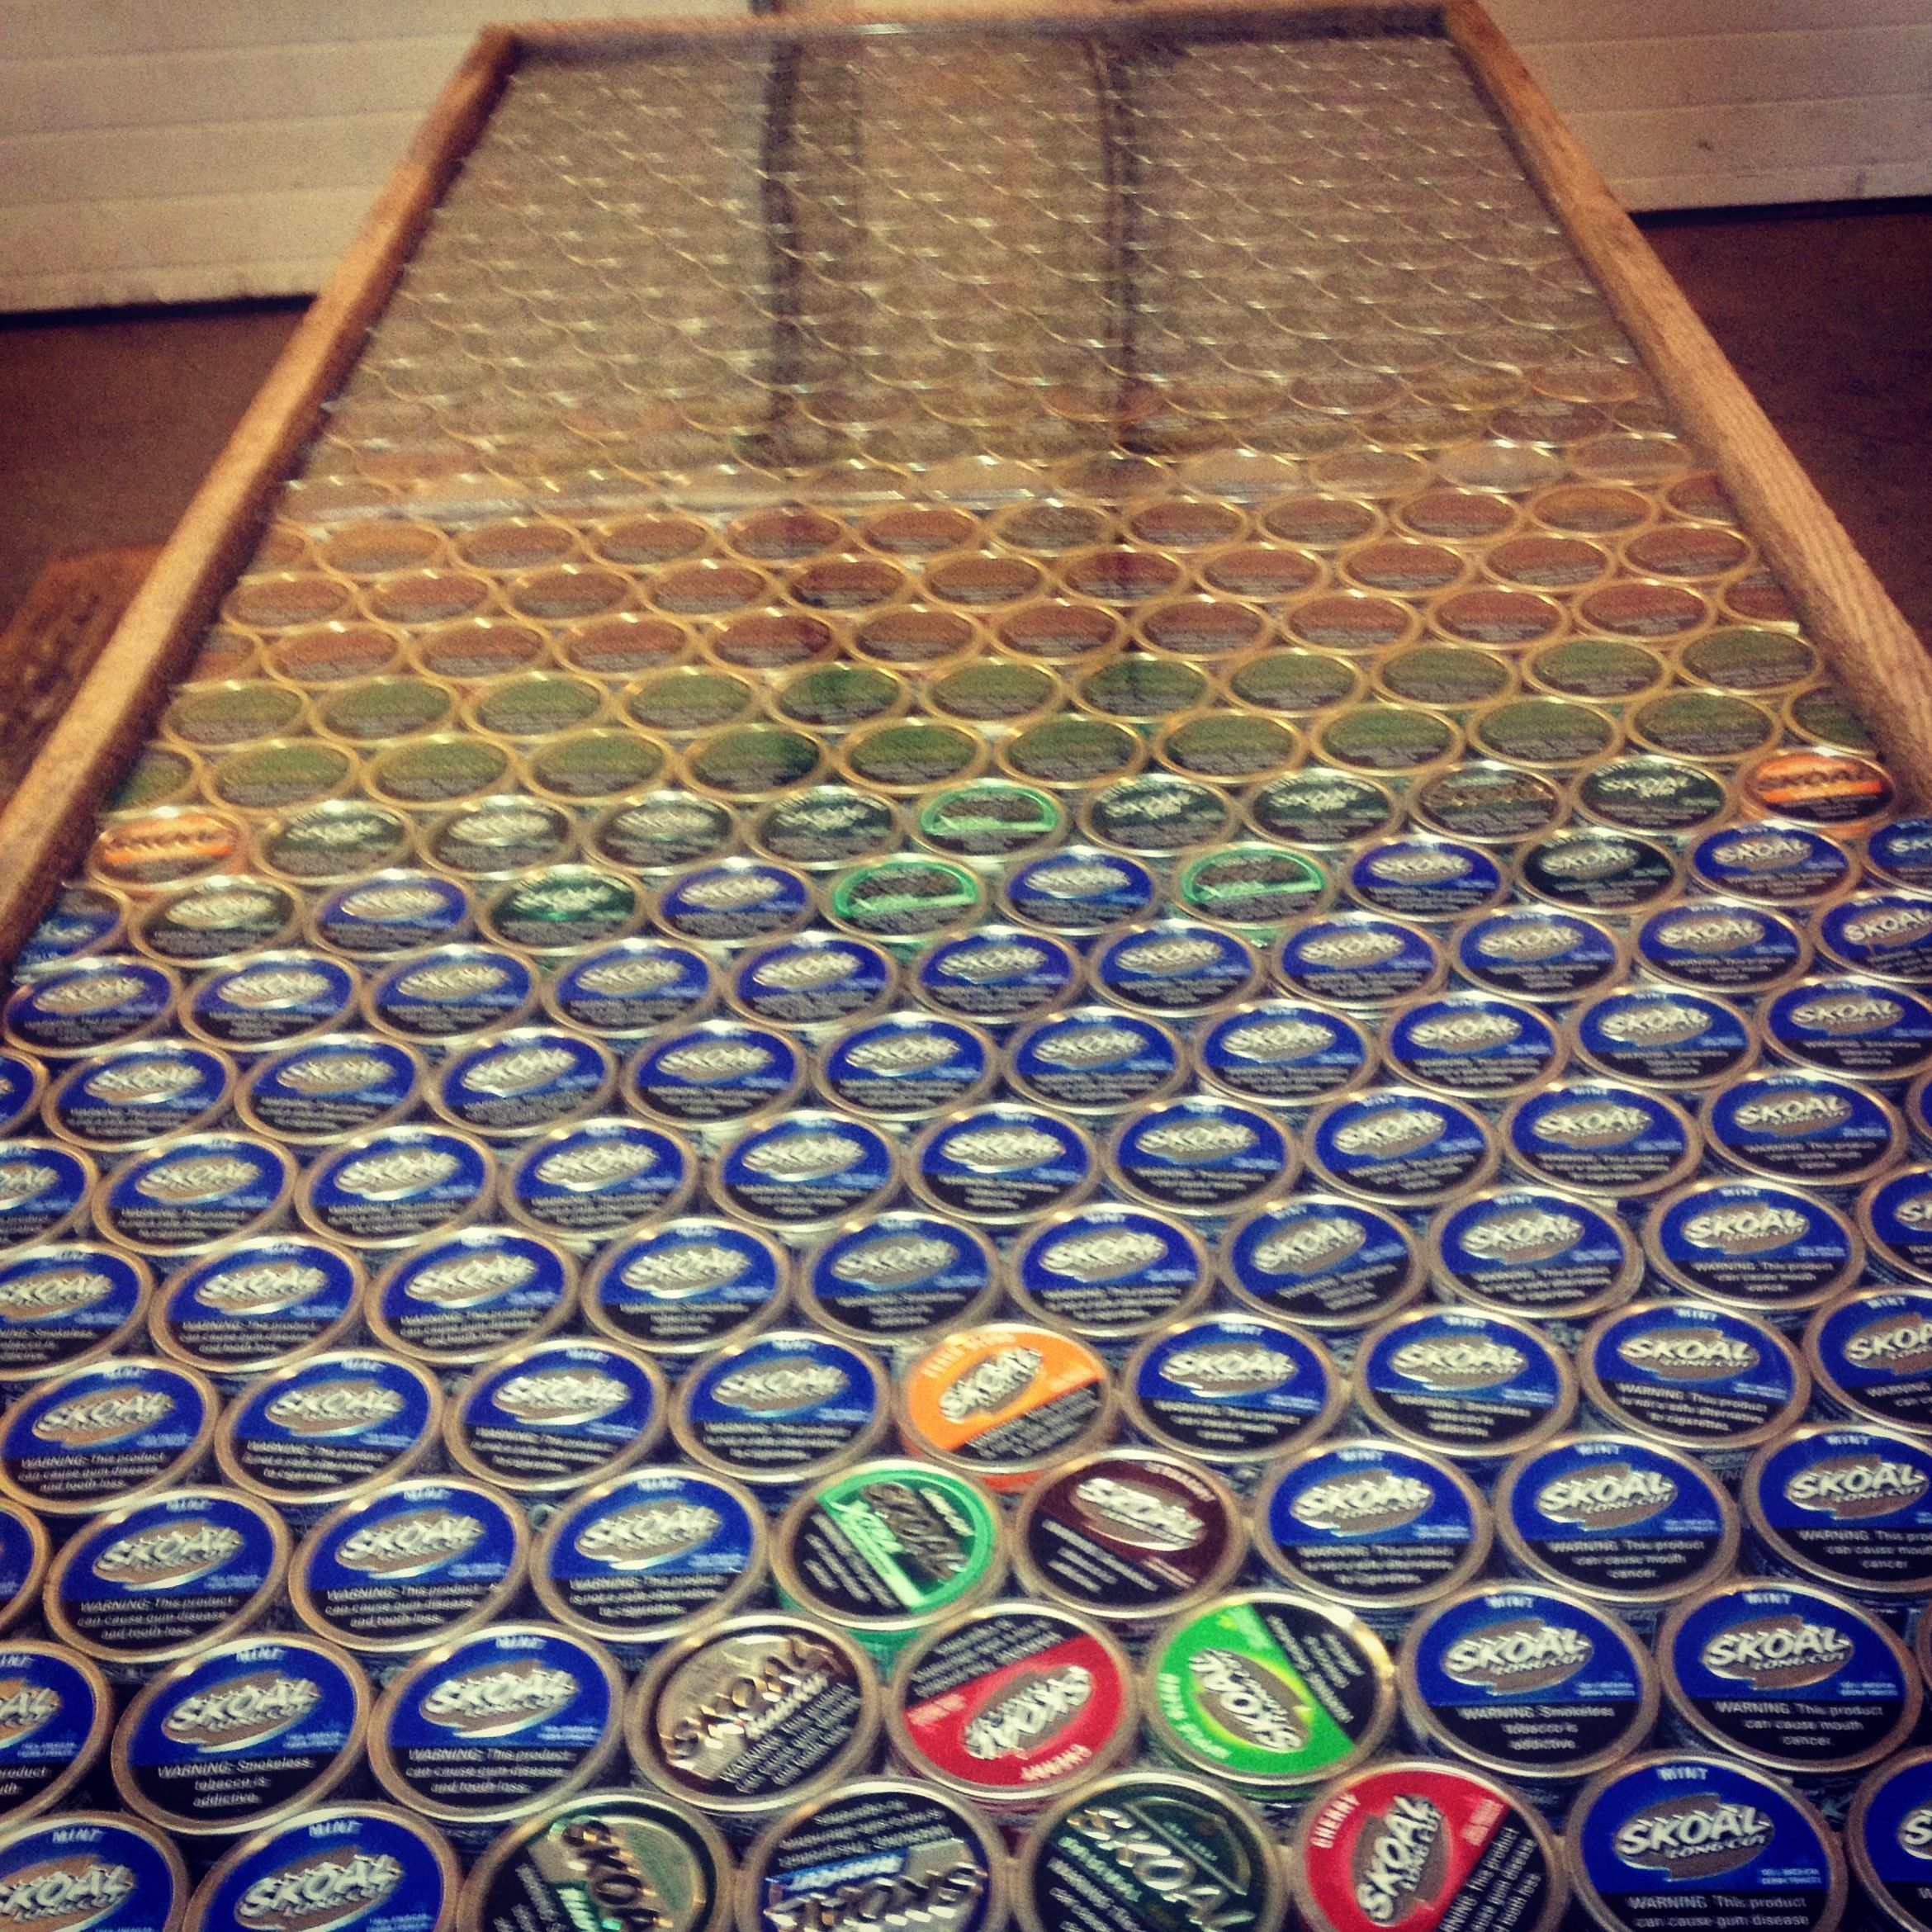 Homemade beer pong table - Homemade Beer Pong Table